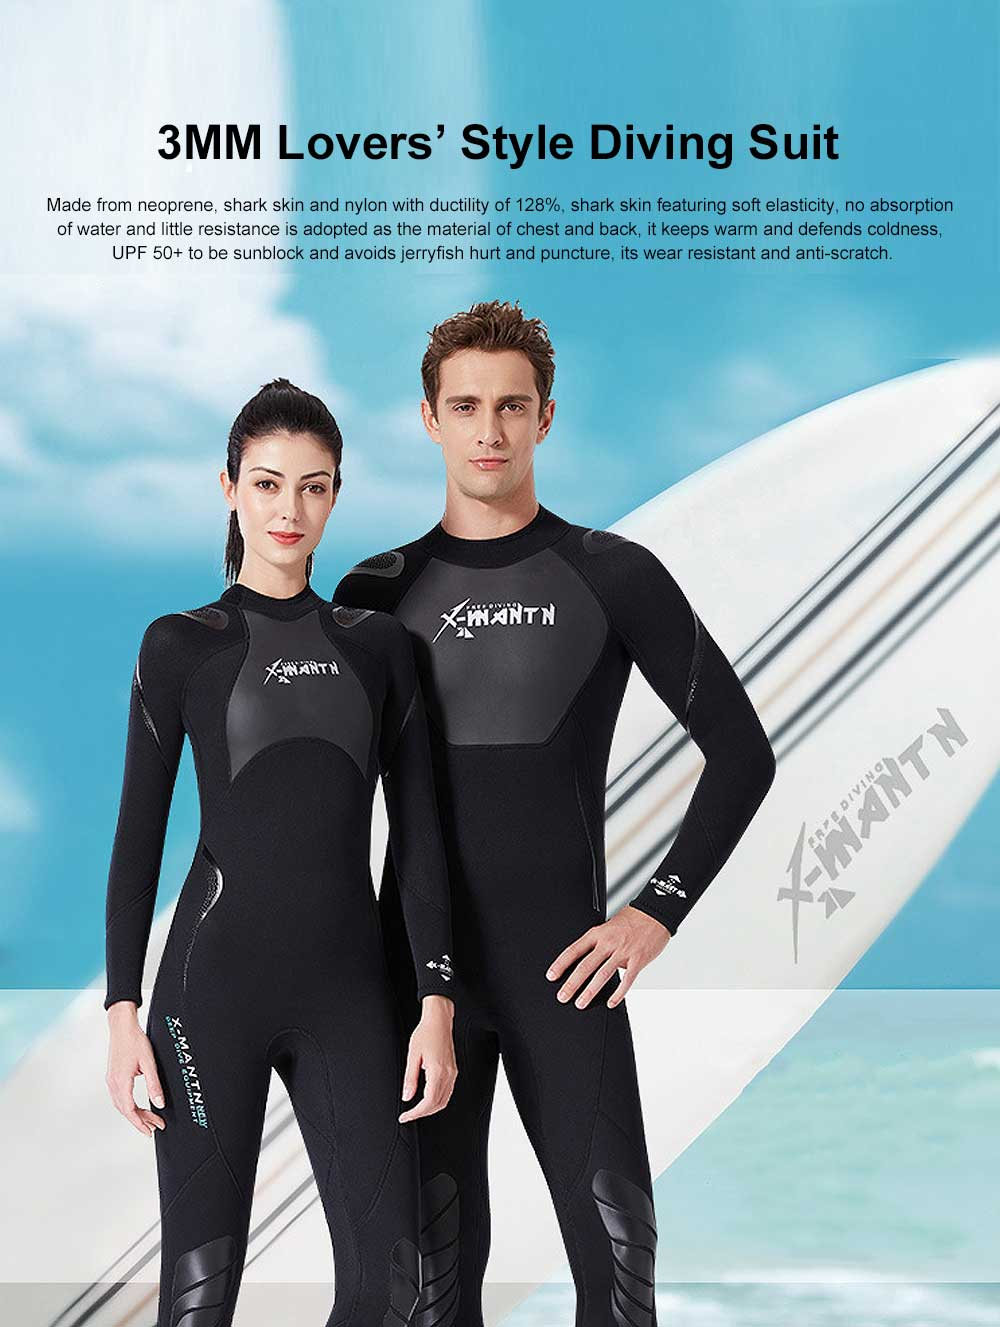 UV Protection Unisex Diving Dress, One-piece Warm-kept Diving Suit, Long Sleeve Swimwear for Snorkeling, Diving Winter Swimsuit 2019 0